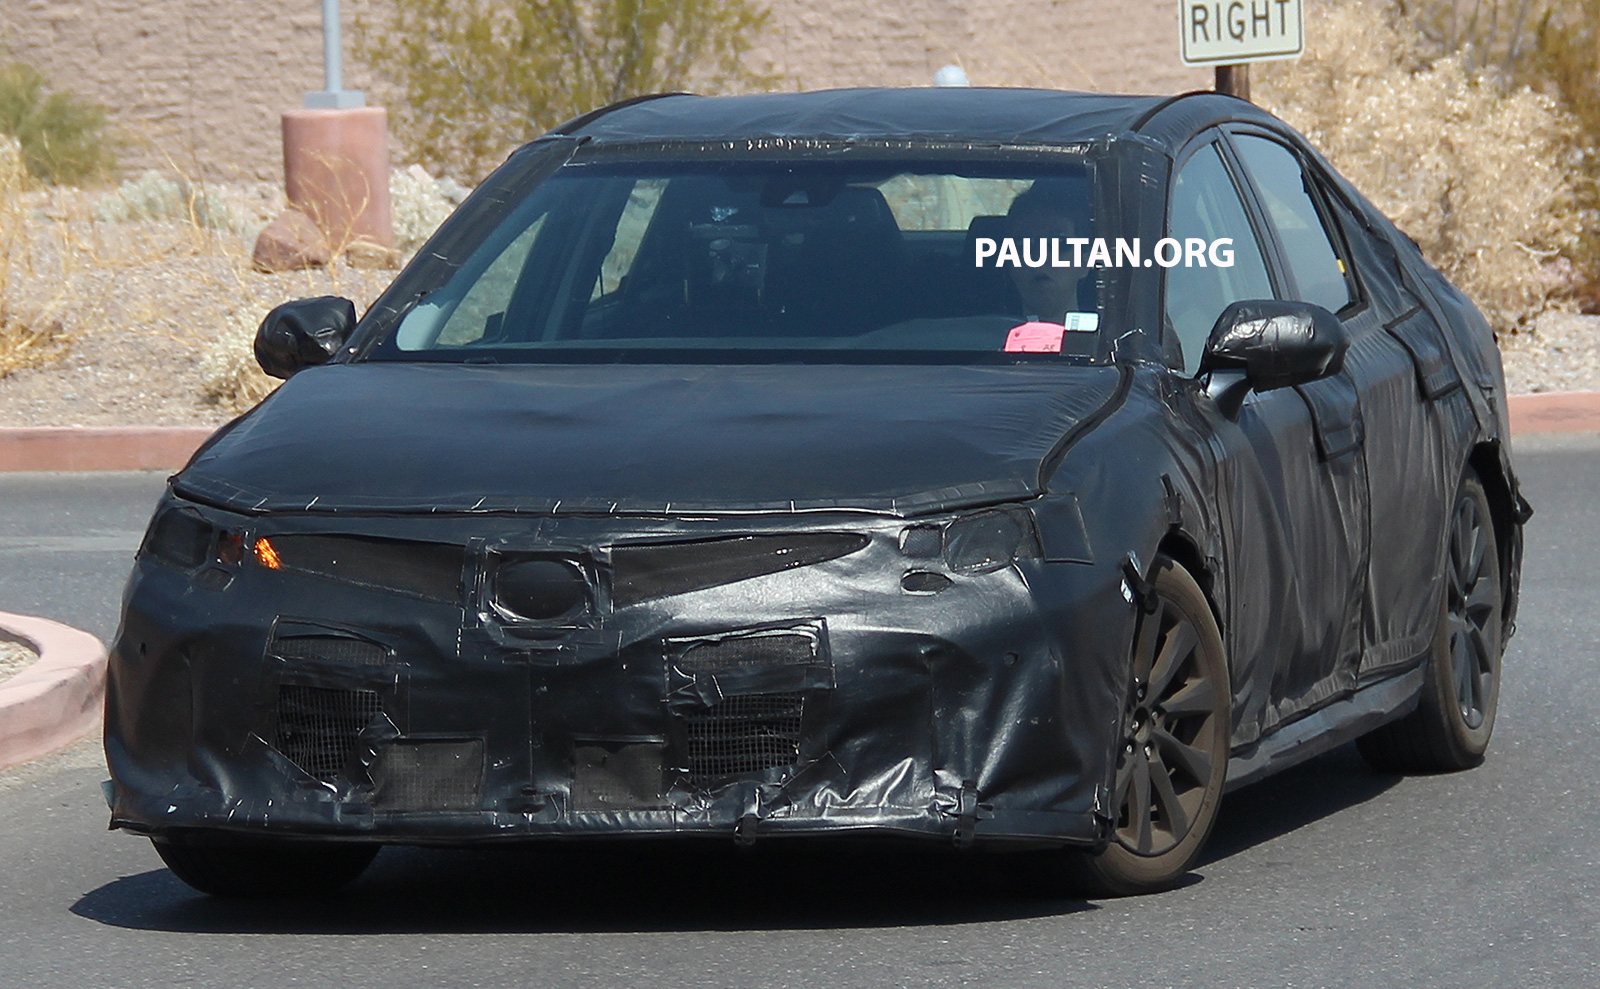 Spyshots 2018 Toyota Camry In The Valley Paul Tan Image 547606